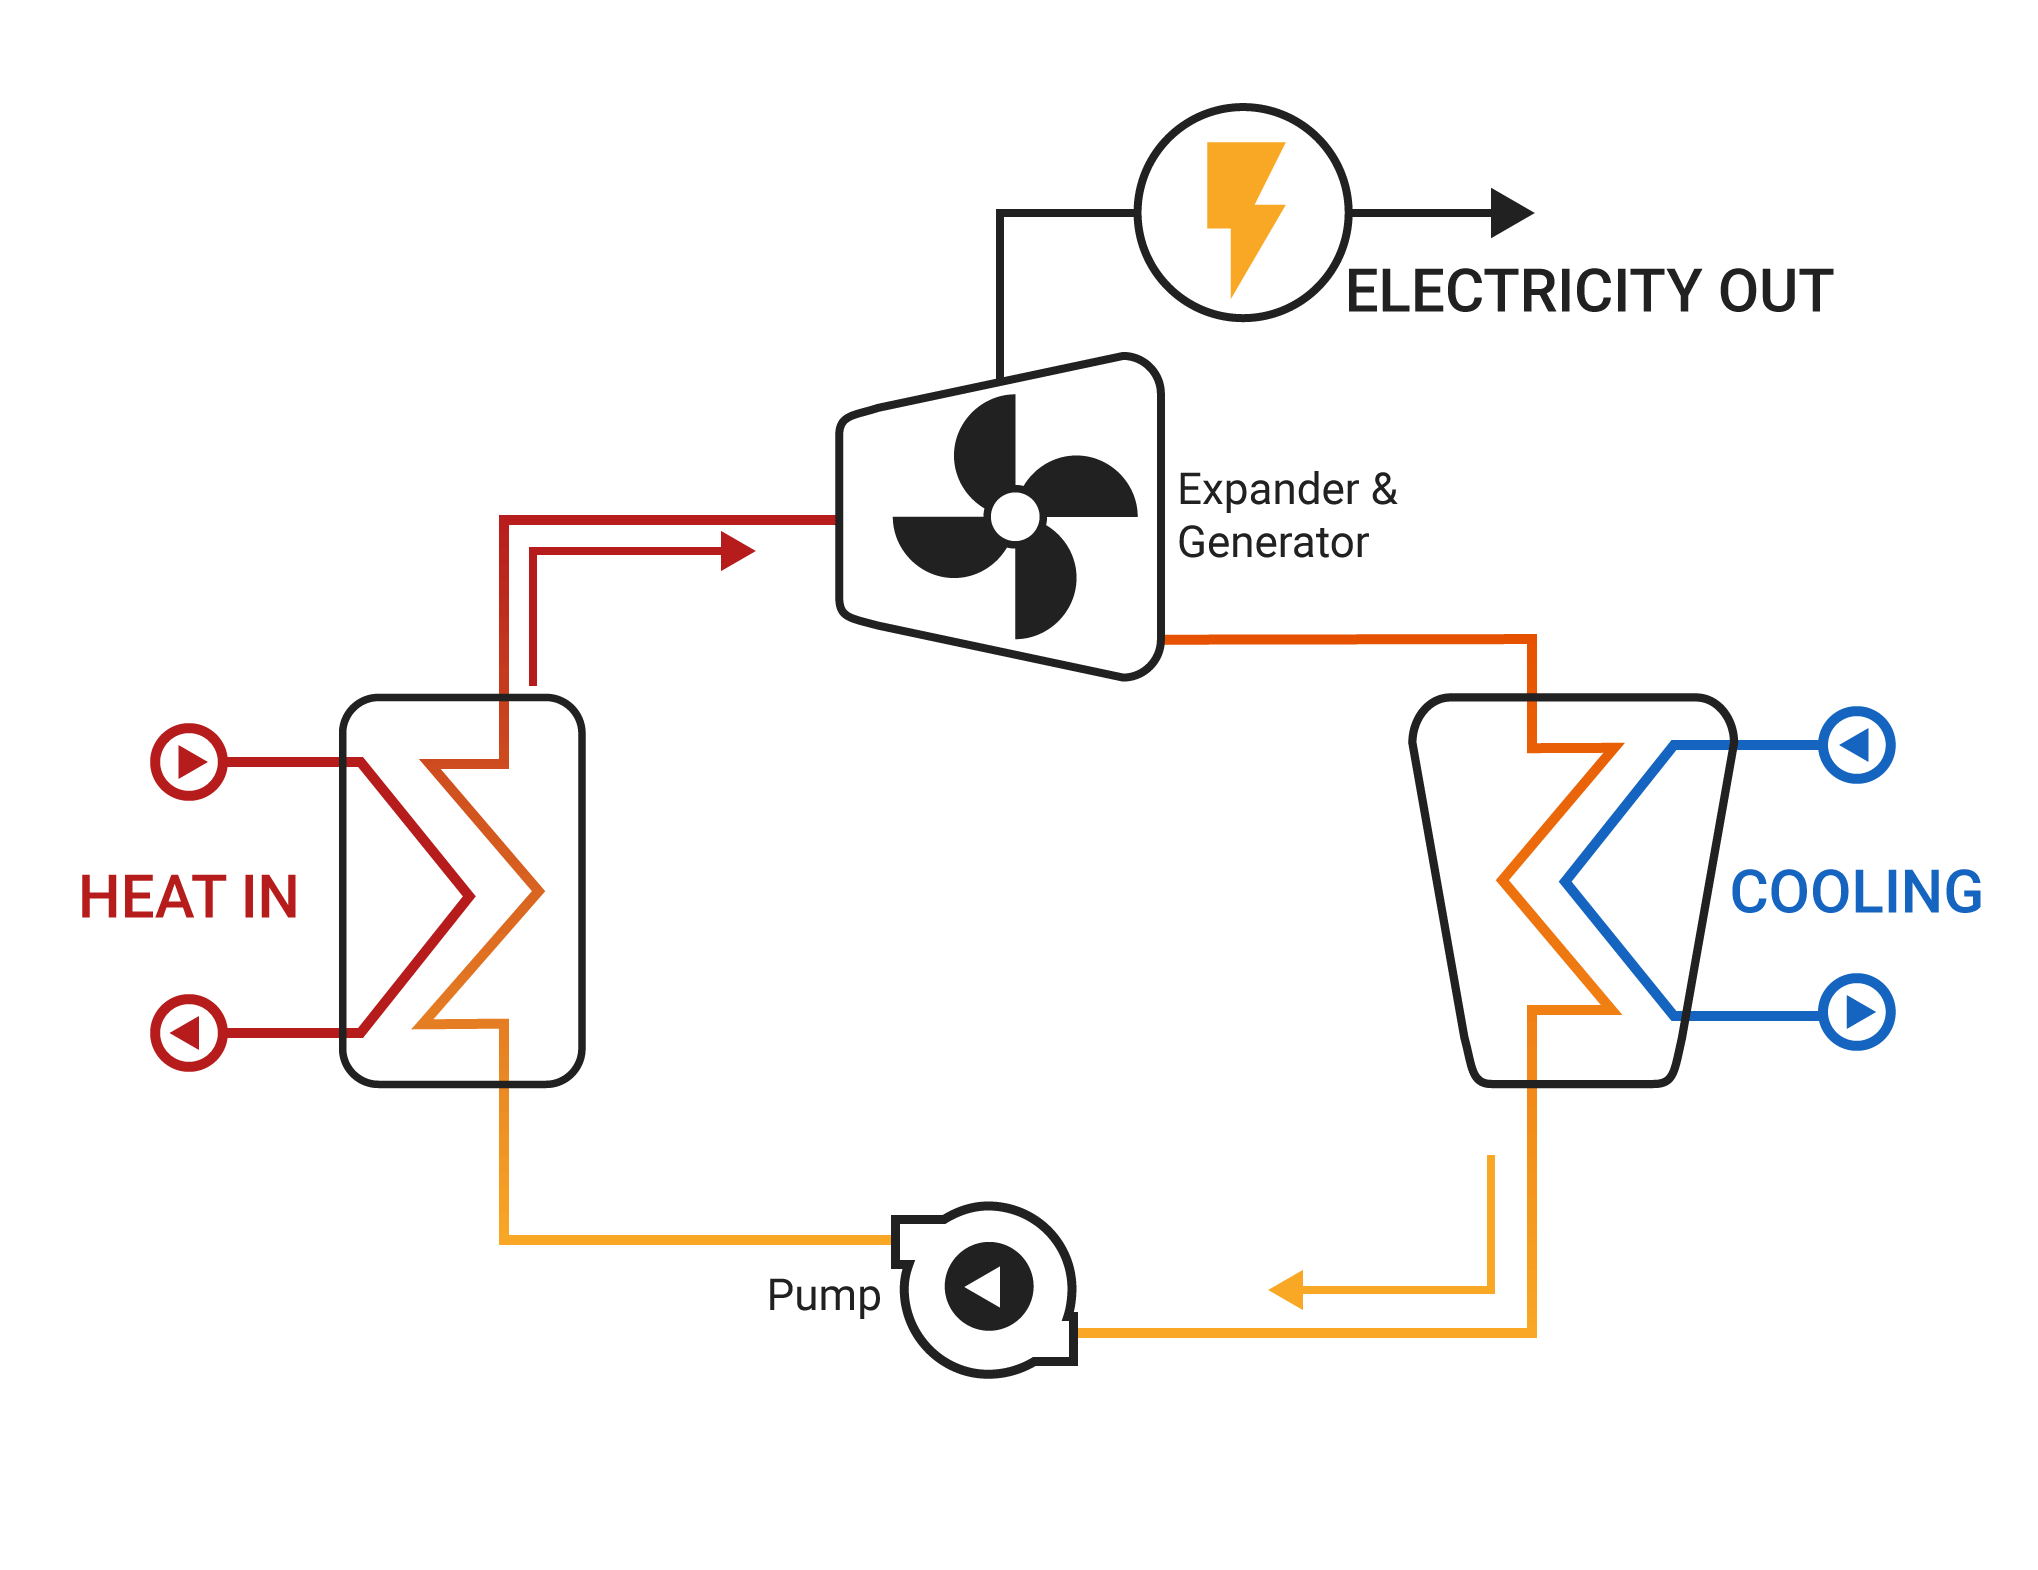 The Rankine Cycle, by which heat is converted into electricity in a closed loop with an expander + generator. The Organic Rankine Cycle follows the same schematic but with a different working fluid in place of water.